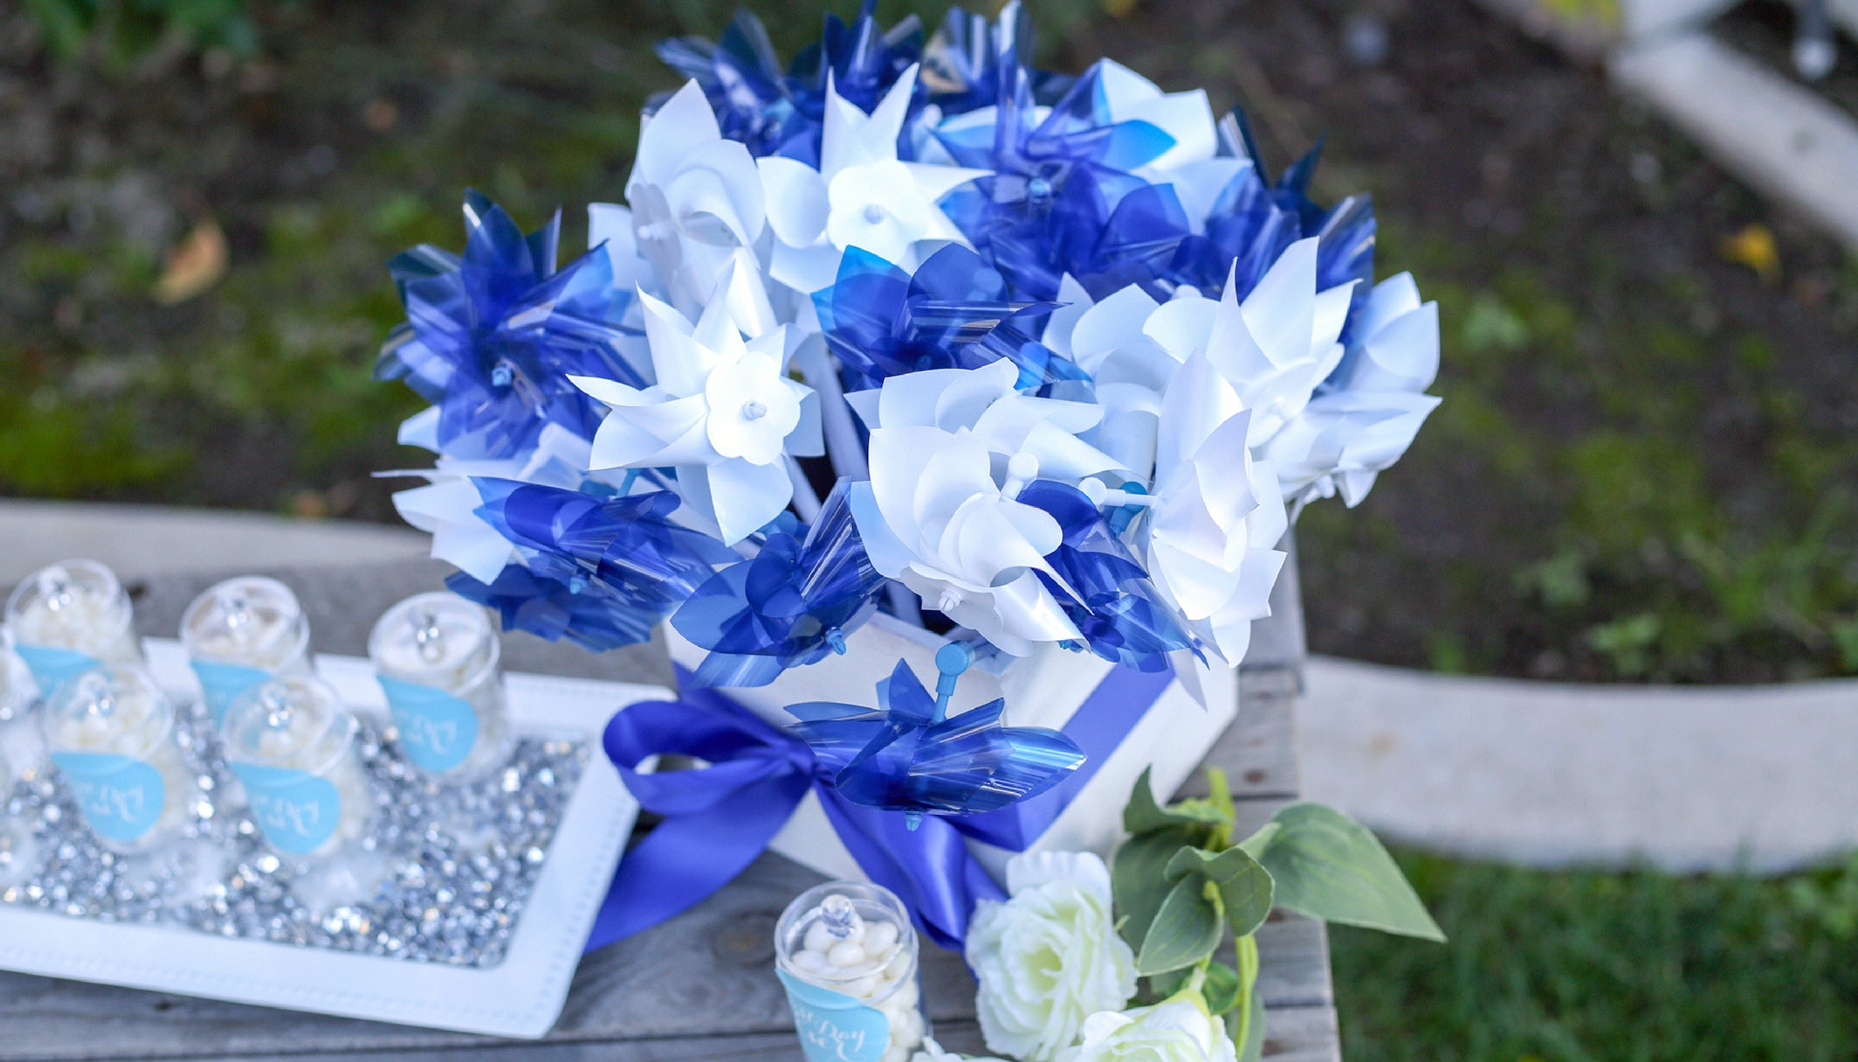 these fun pinwheels are another great way to get some guest participation going at your bridal shower